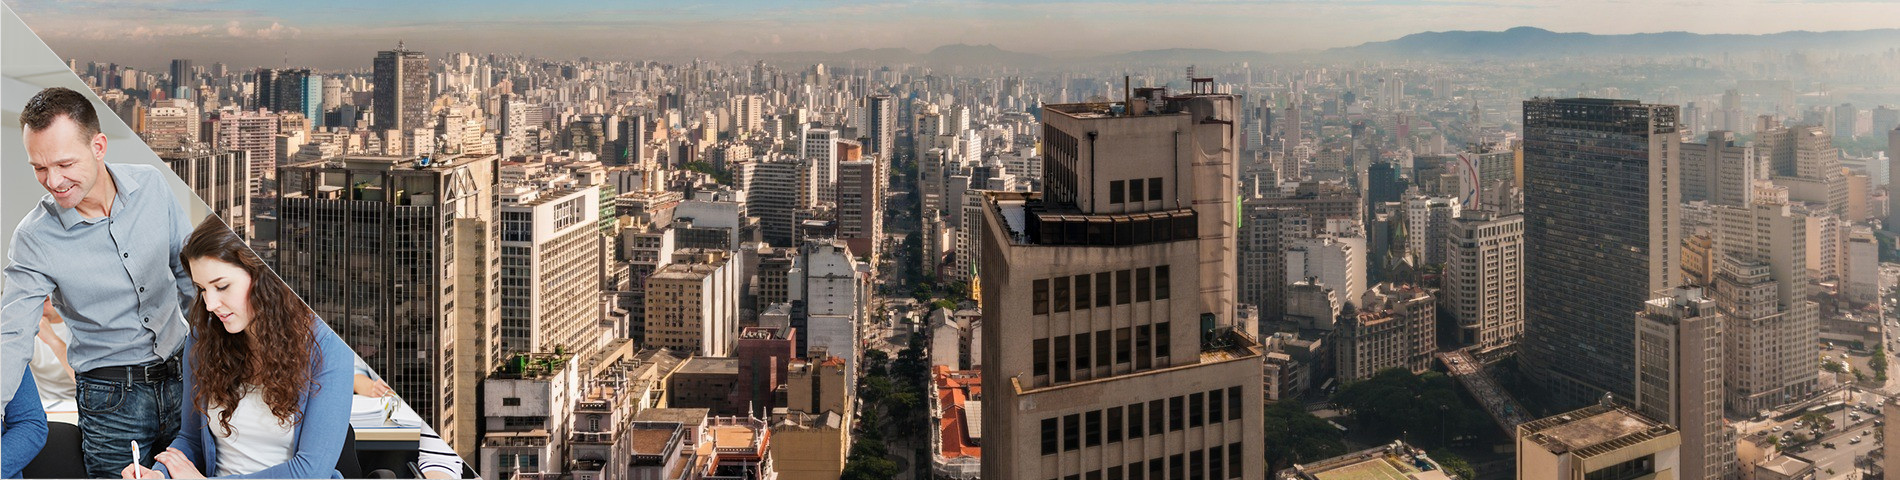 Sao Paulo - Combi: Groupe + particuliers